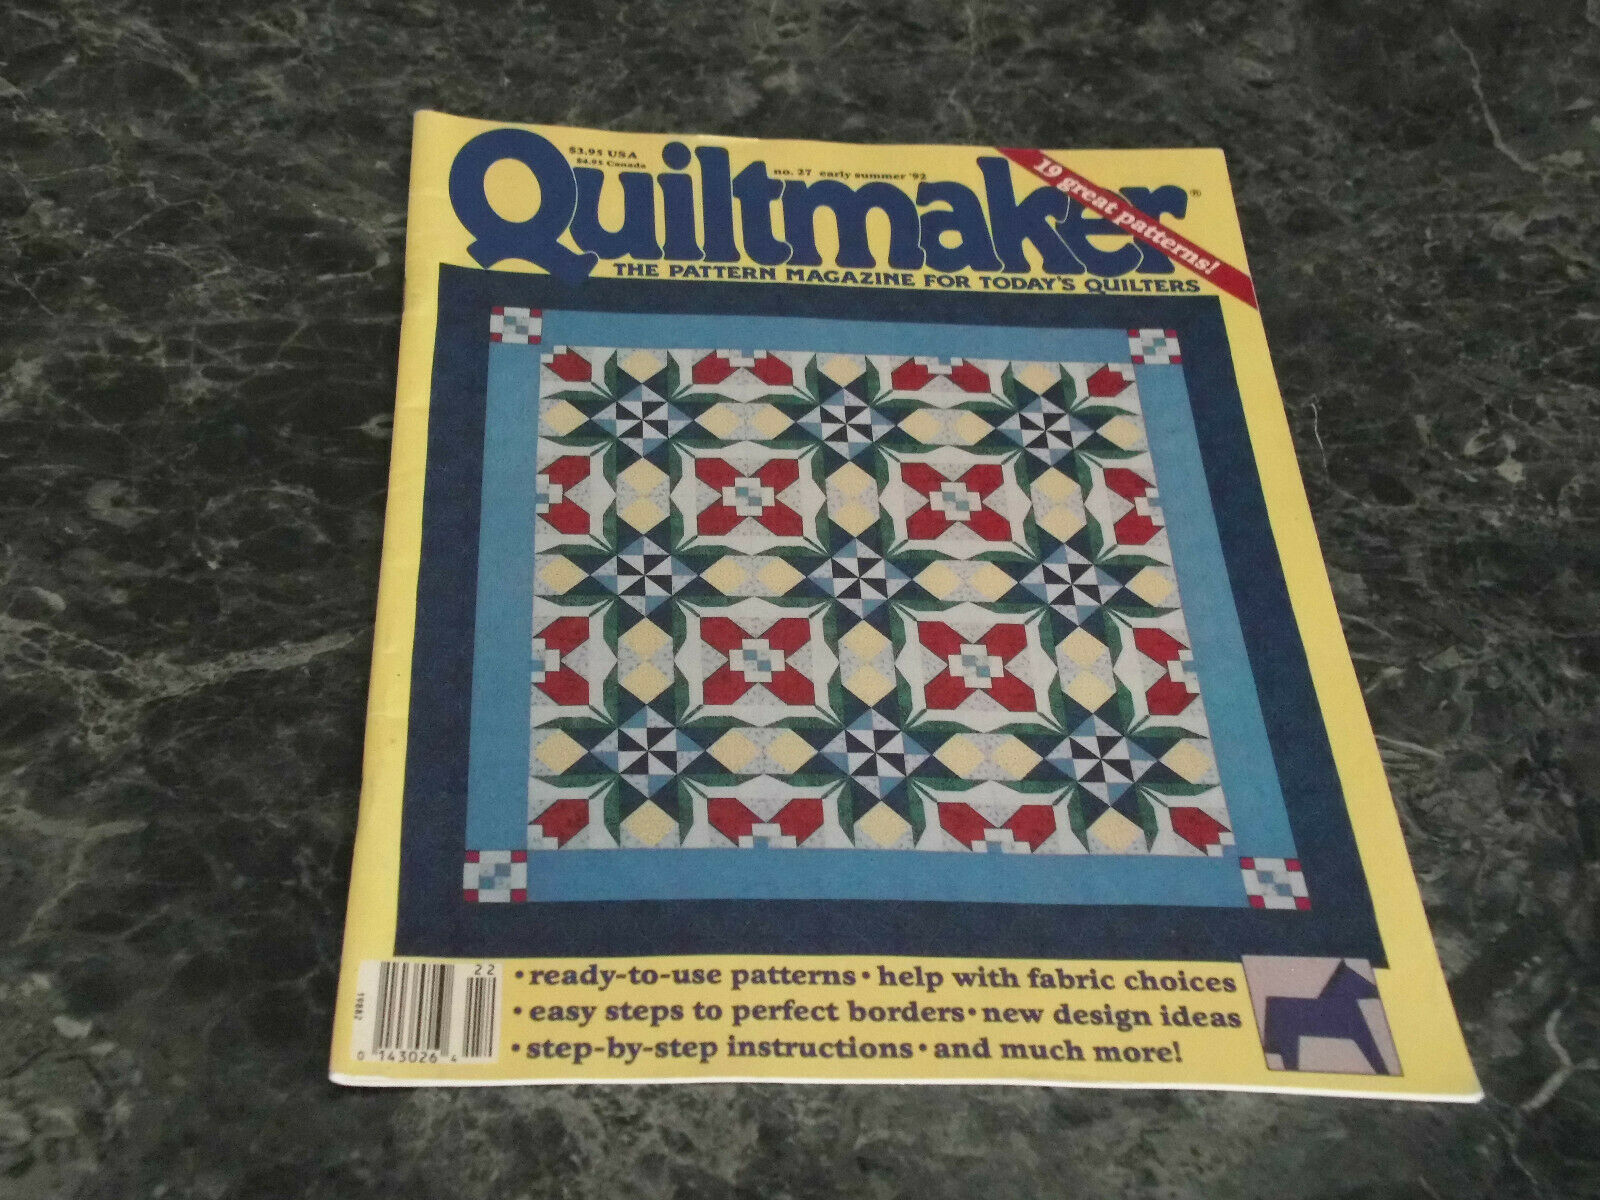 Quiltmaker Pattern Magazine for today's Quilters Early Summer 1992 No 27 Glory B - $2.99